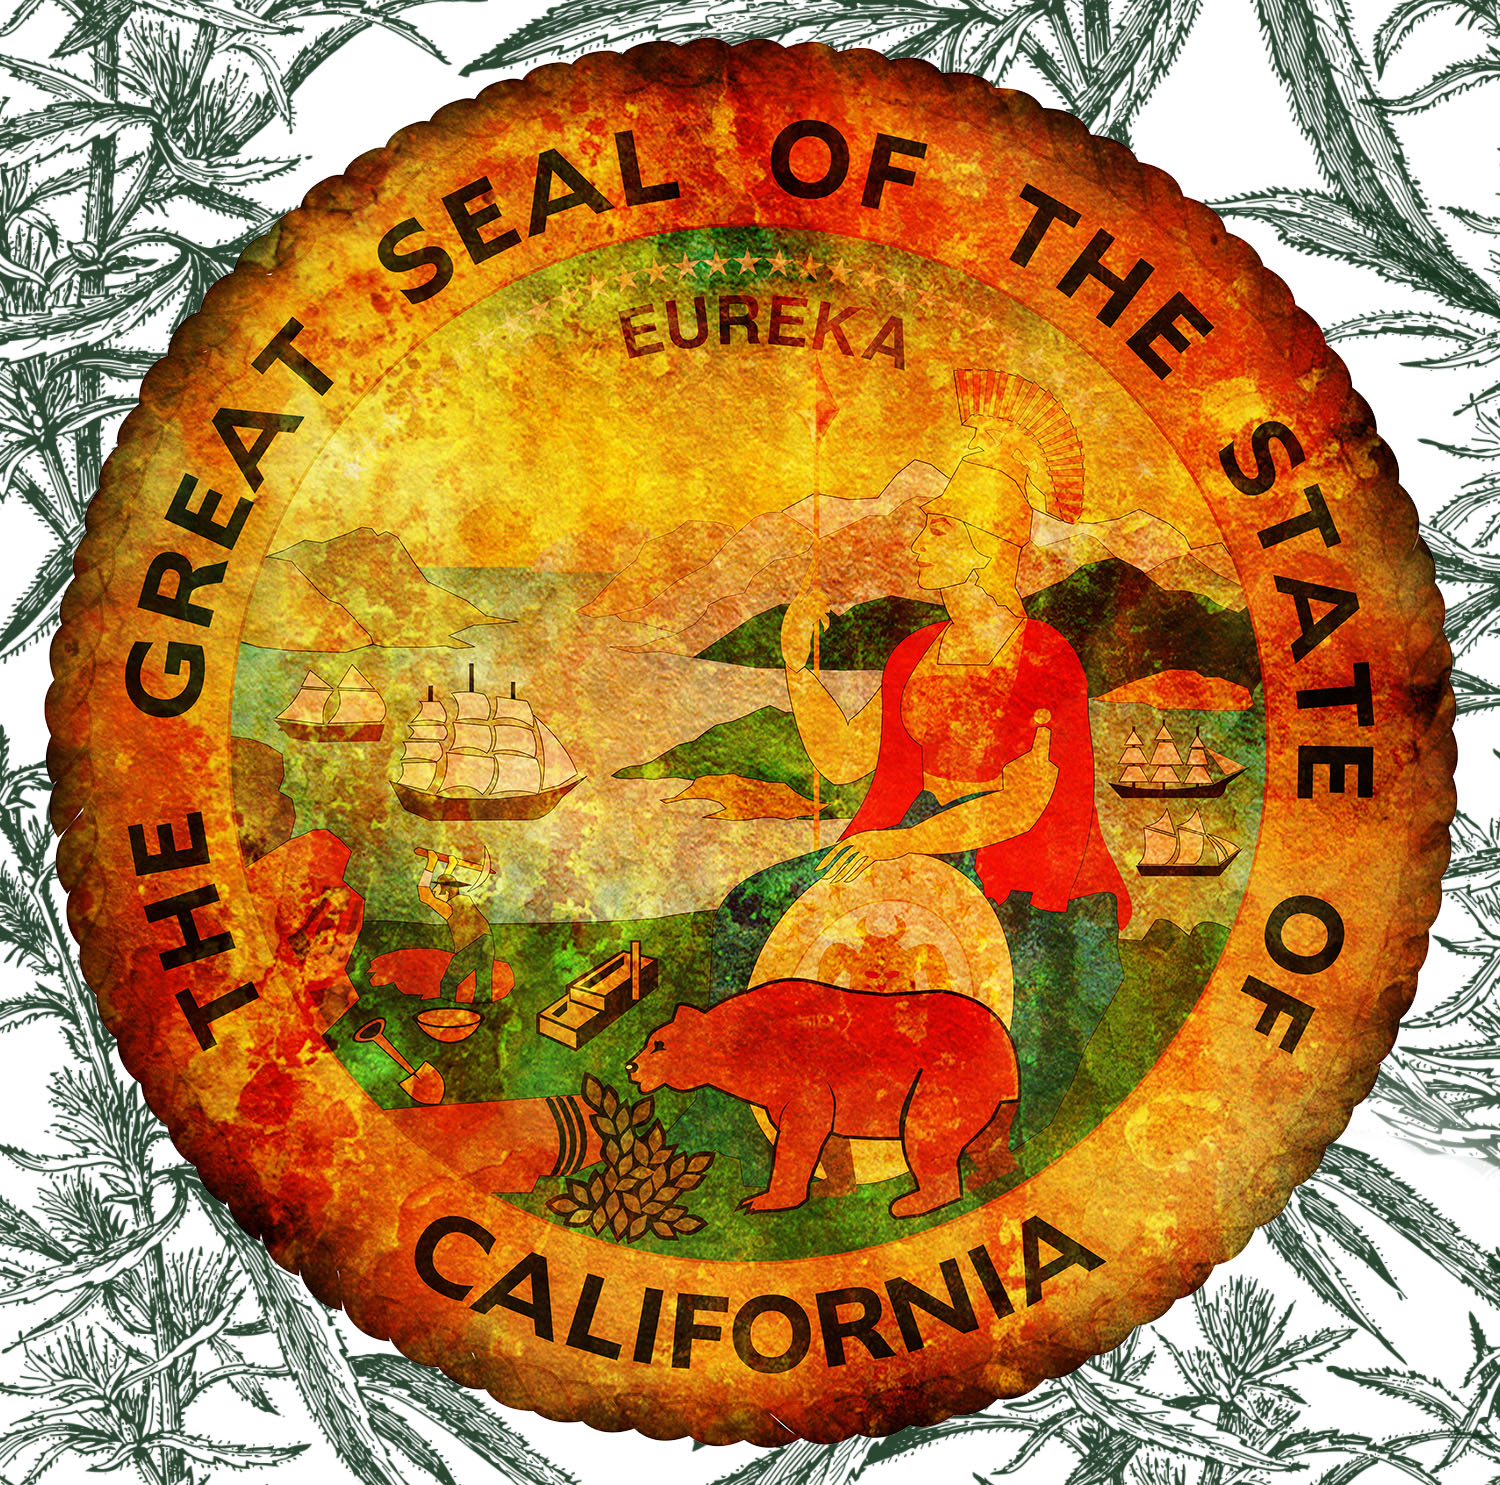 How to Apply for a California Cannabis Business License